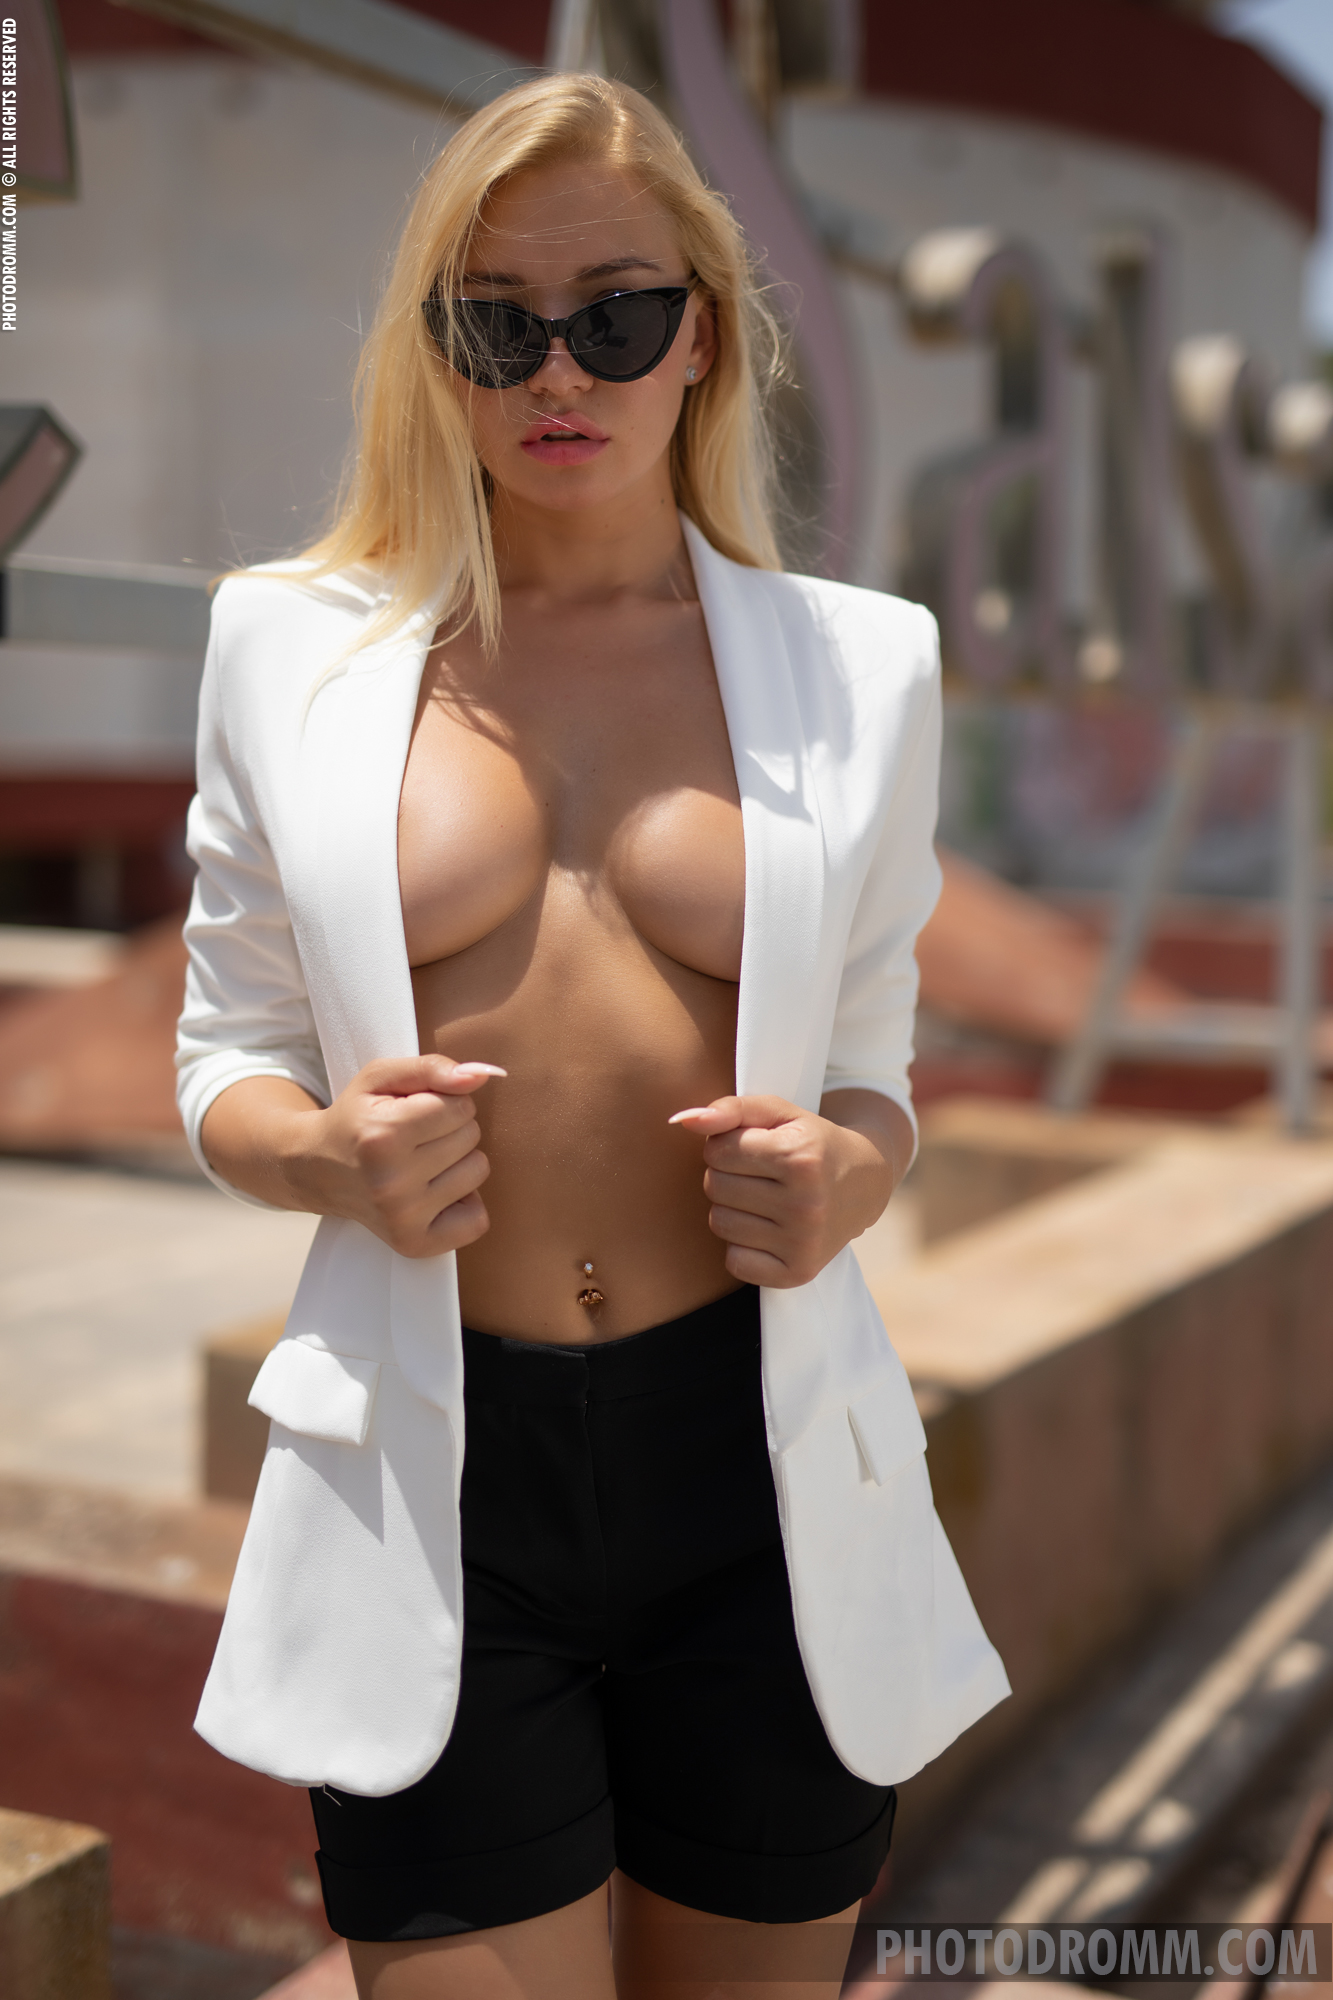 Fabiana Big Tit Blonde in Tight White Jacket for Photodromm